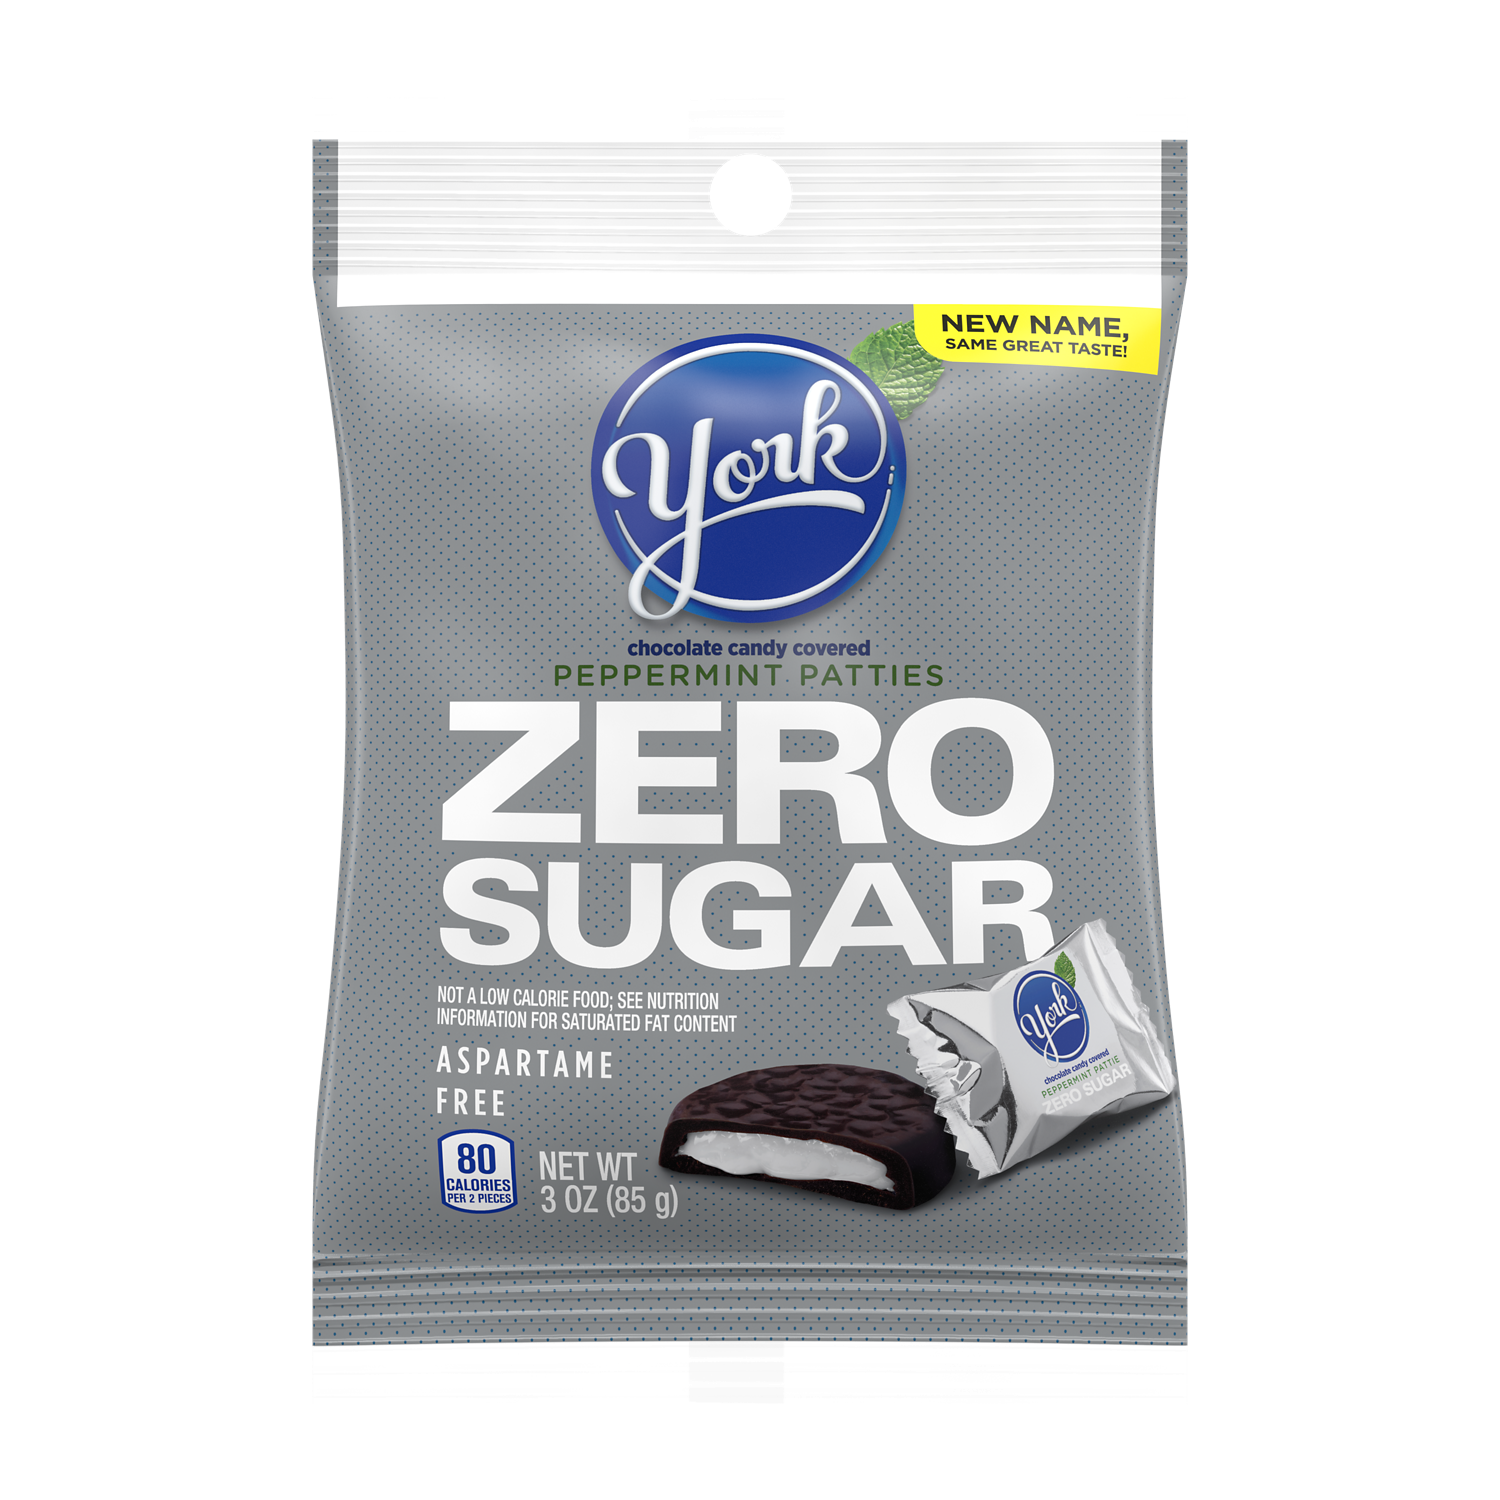 YORK Zero Sugar Dark Chocolate Candy Peppermint Patties, 3 oz bag - Front of Package